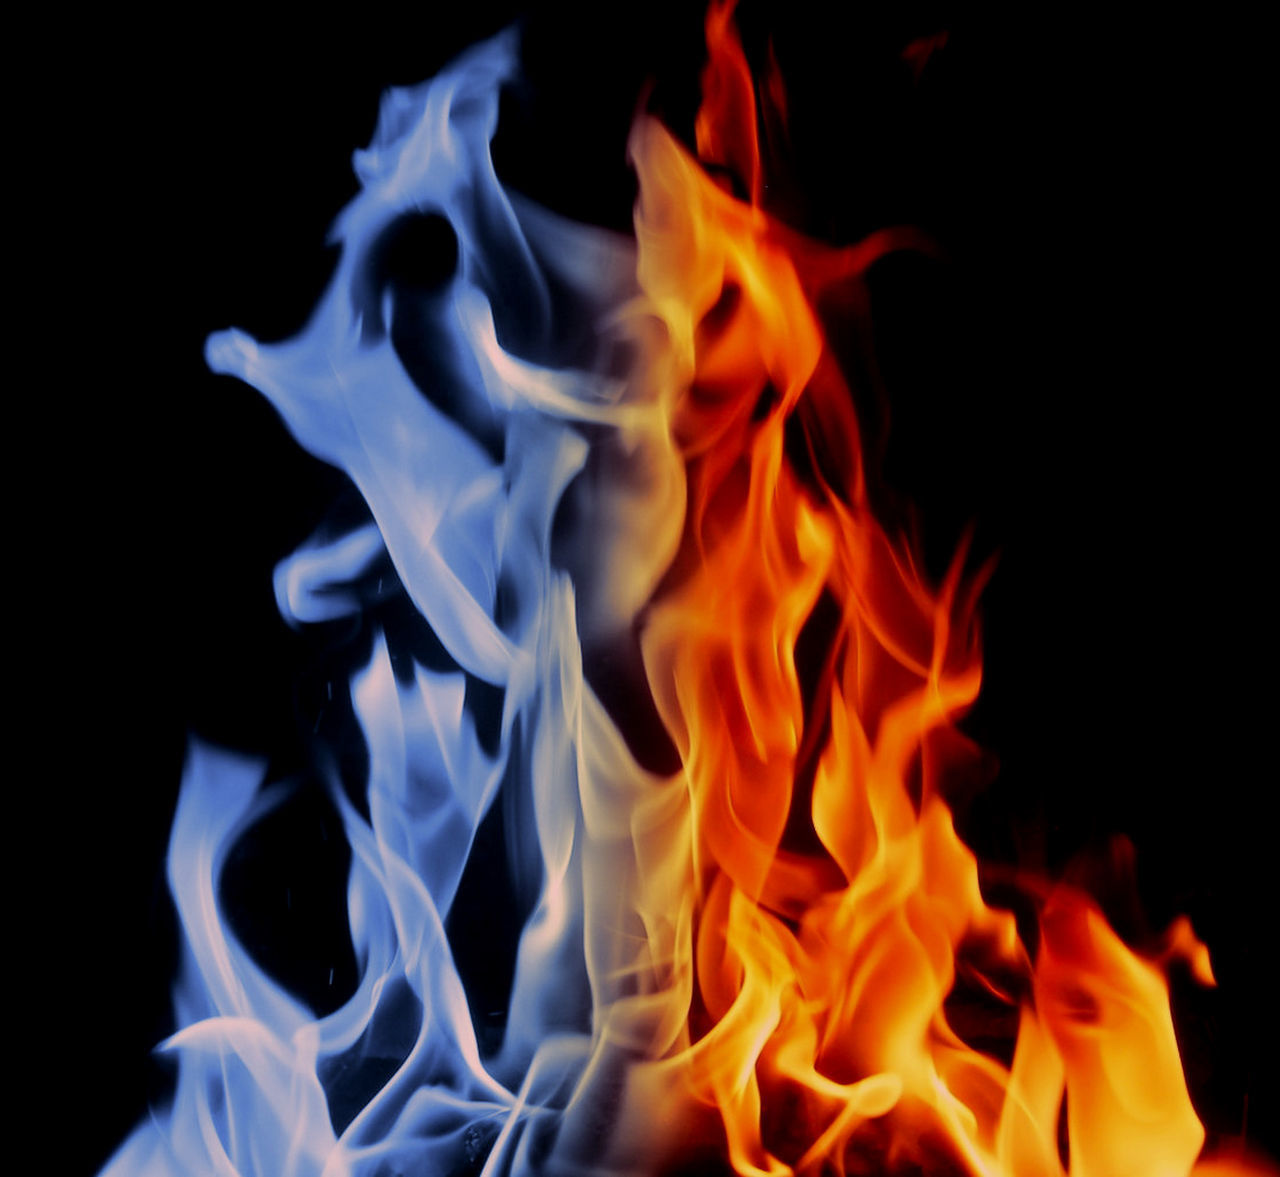 Made by me. Abstract Black Background Burning Close-up Design Fire Flame Flames Heat - Temperature Motion No People Webdesign